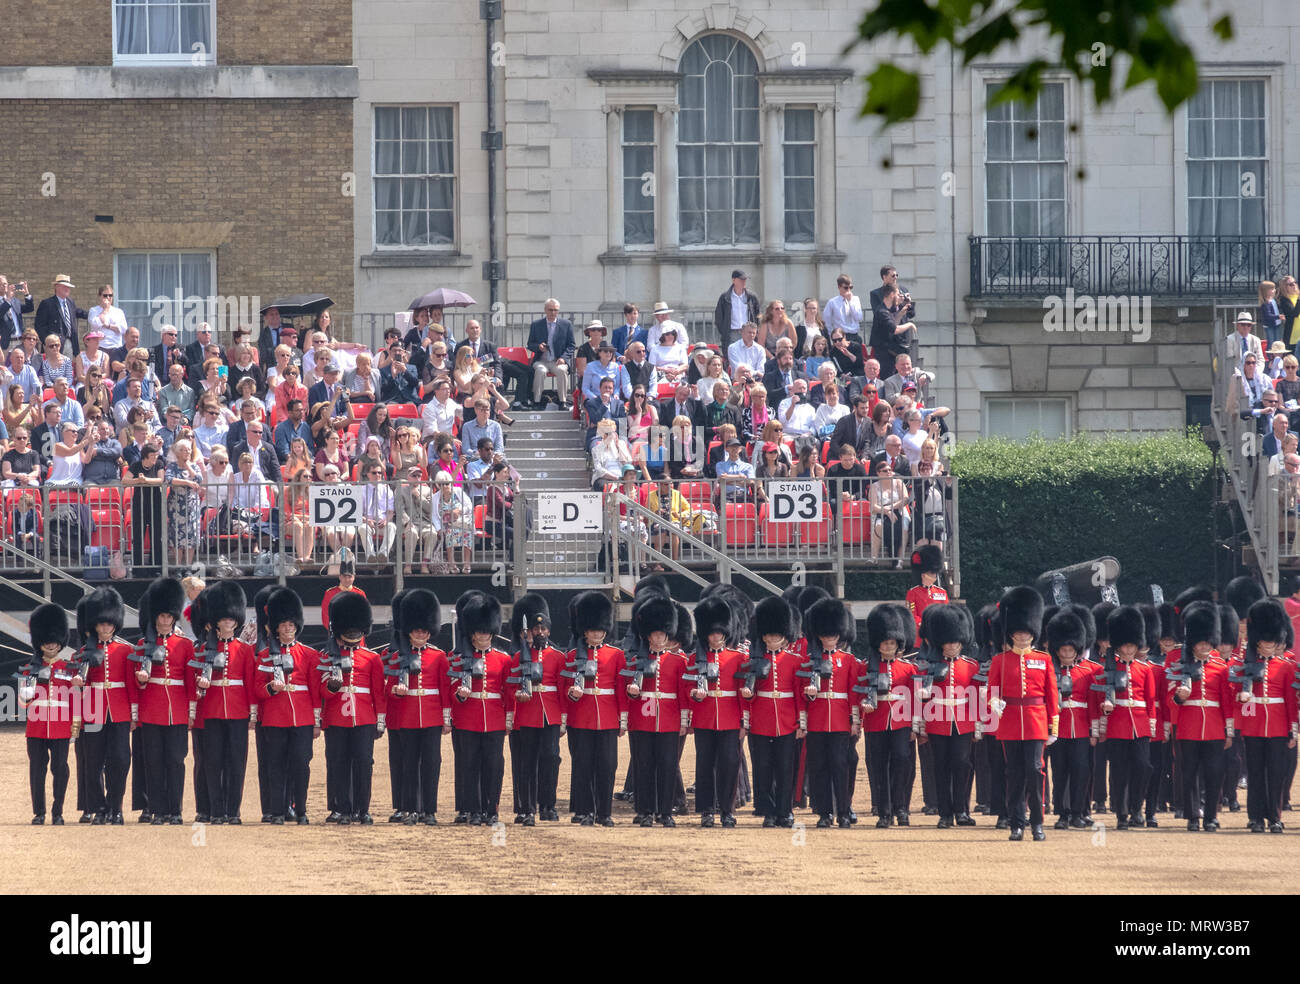 Panorama of Trooping the Colour military ceremony at Horse Guards Parade, London, showing Royal Guards (Queen's Guards) in red and black uniform - Stock Image